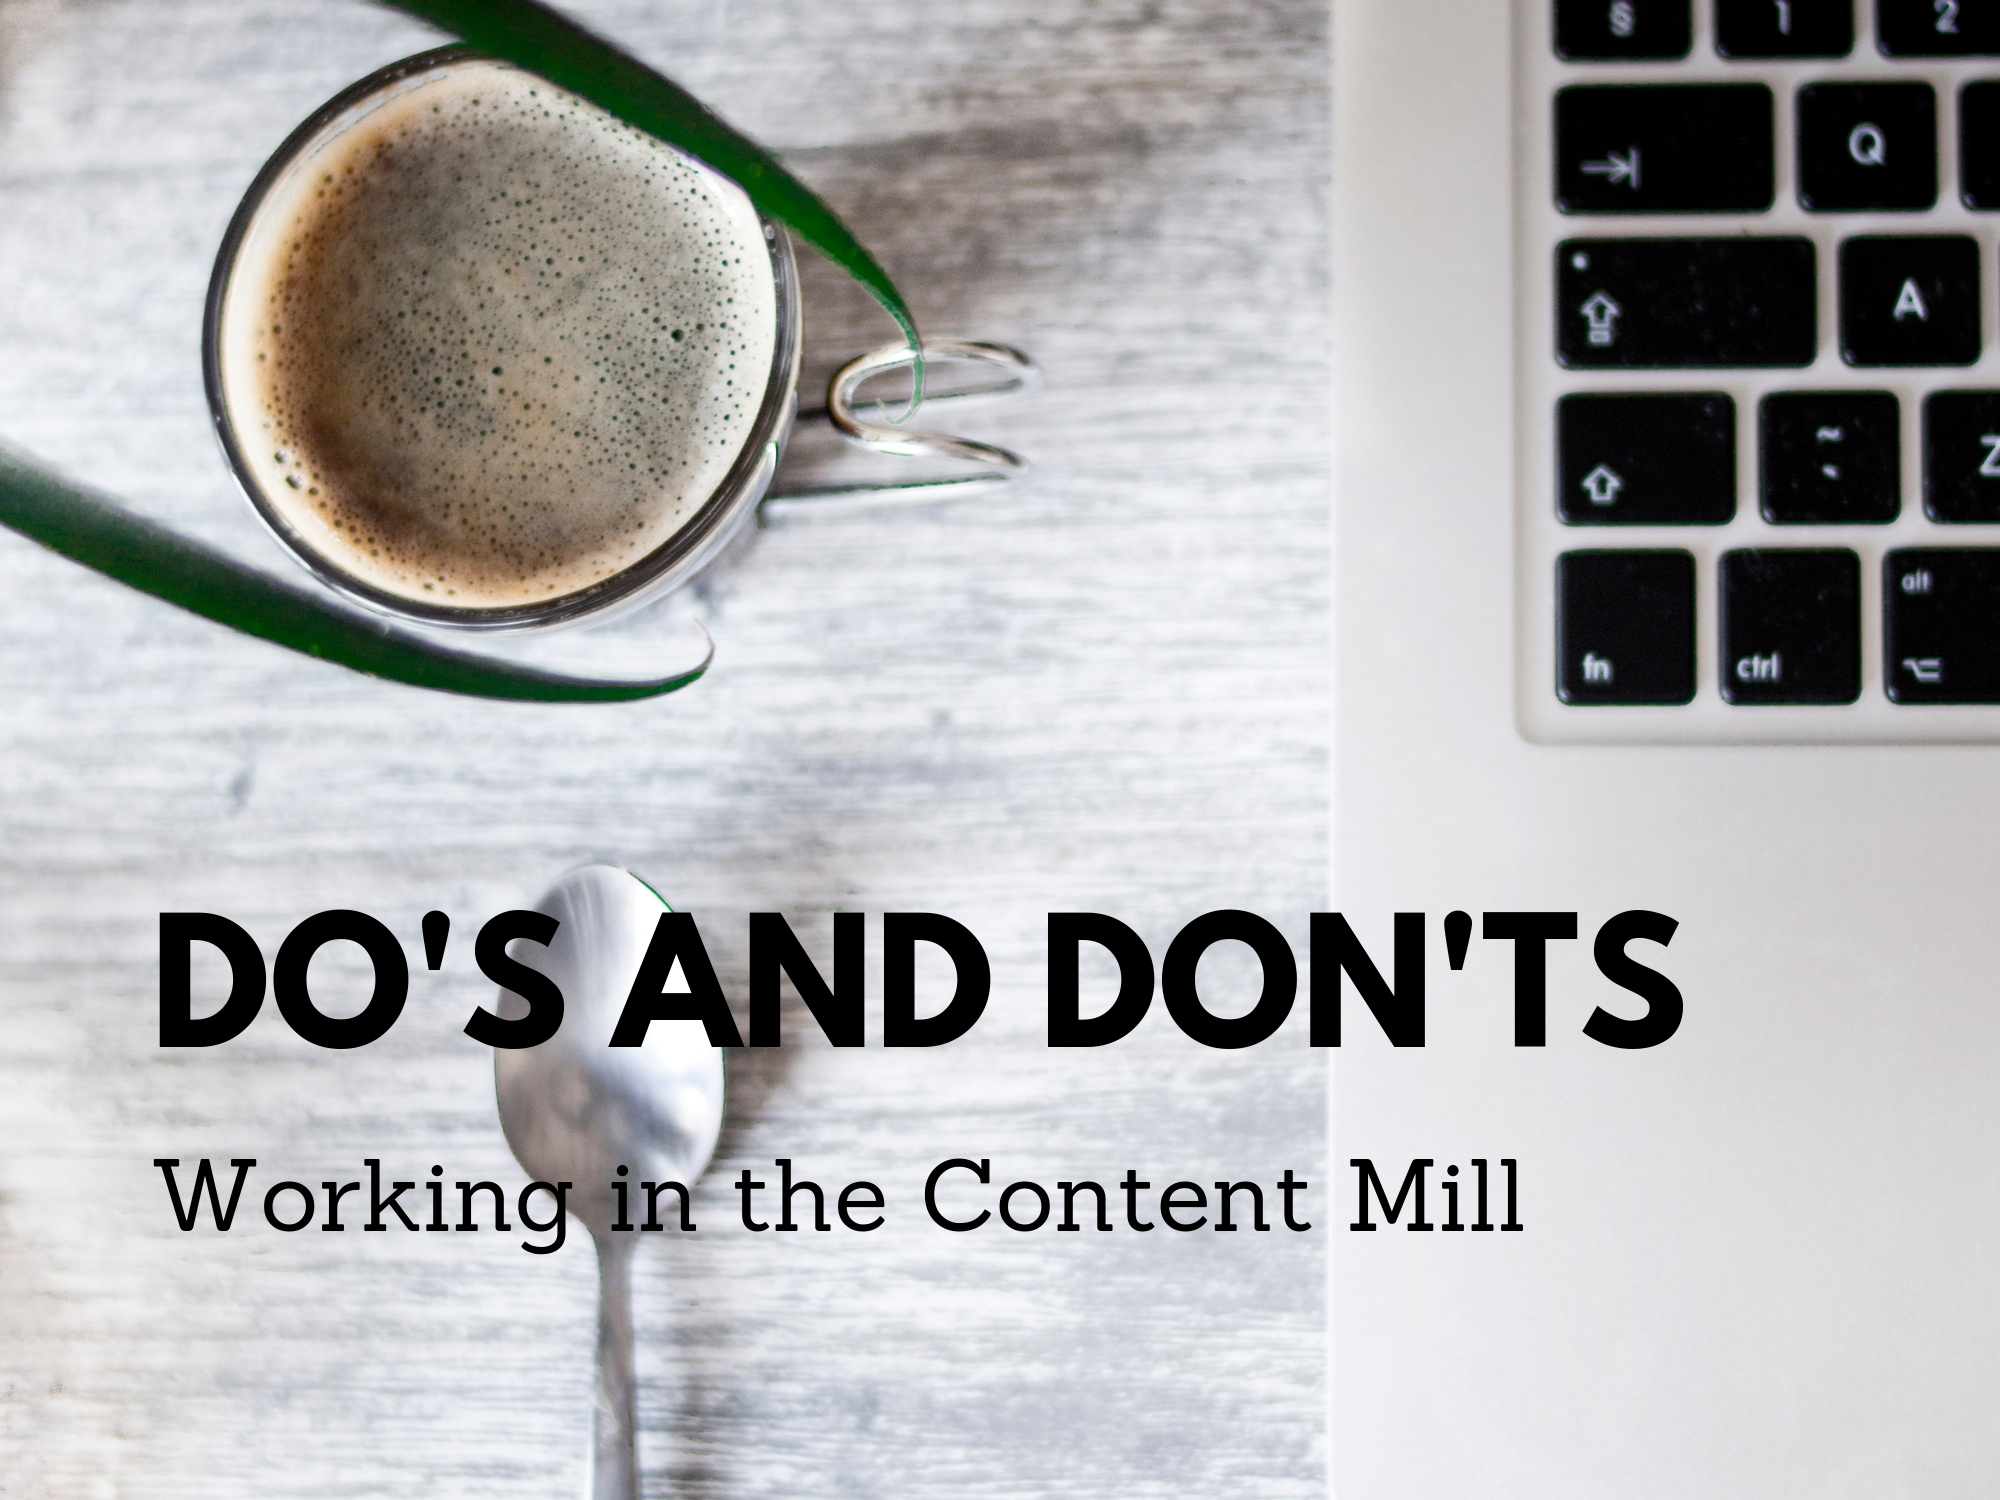 Dos and Don't of Working in the content Mill